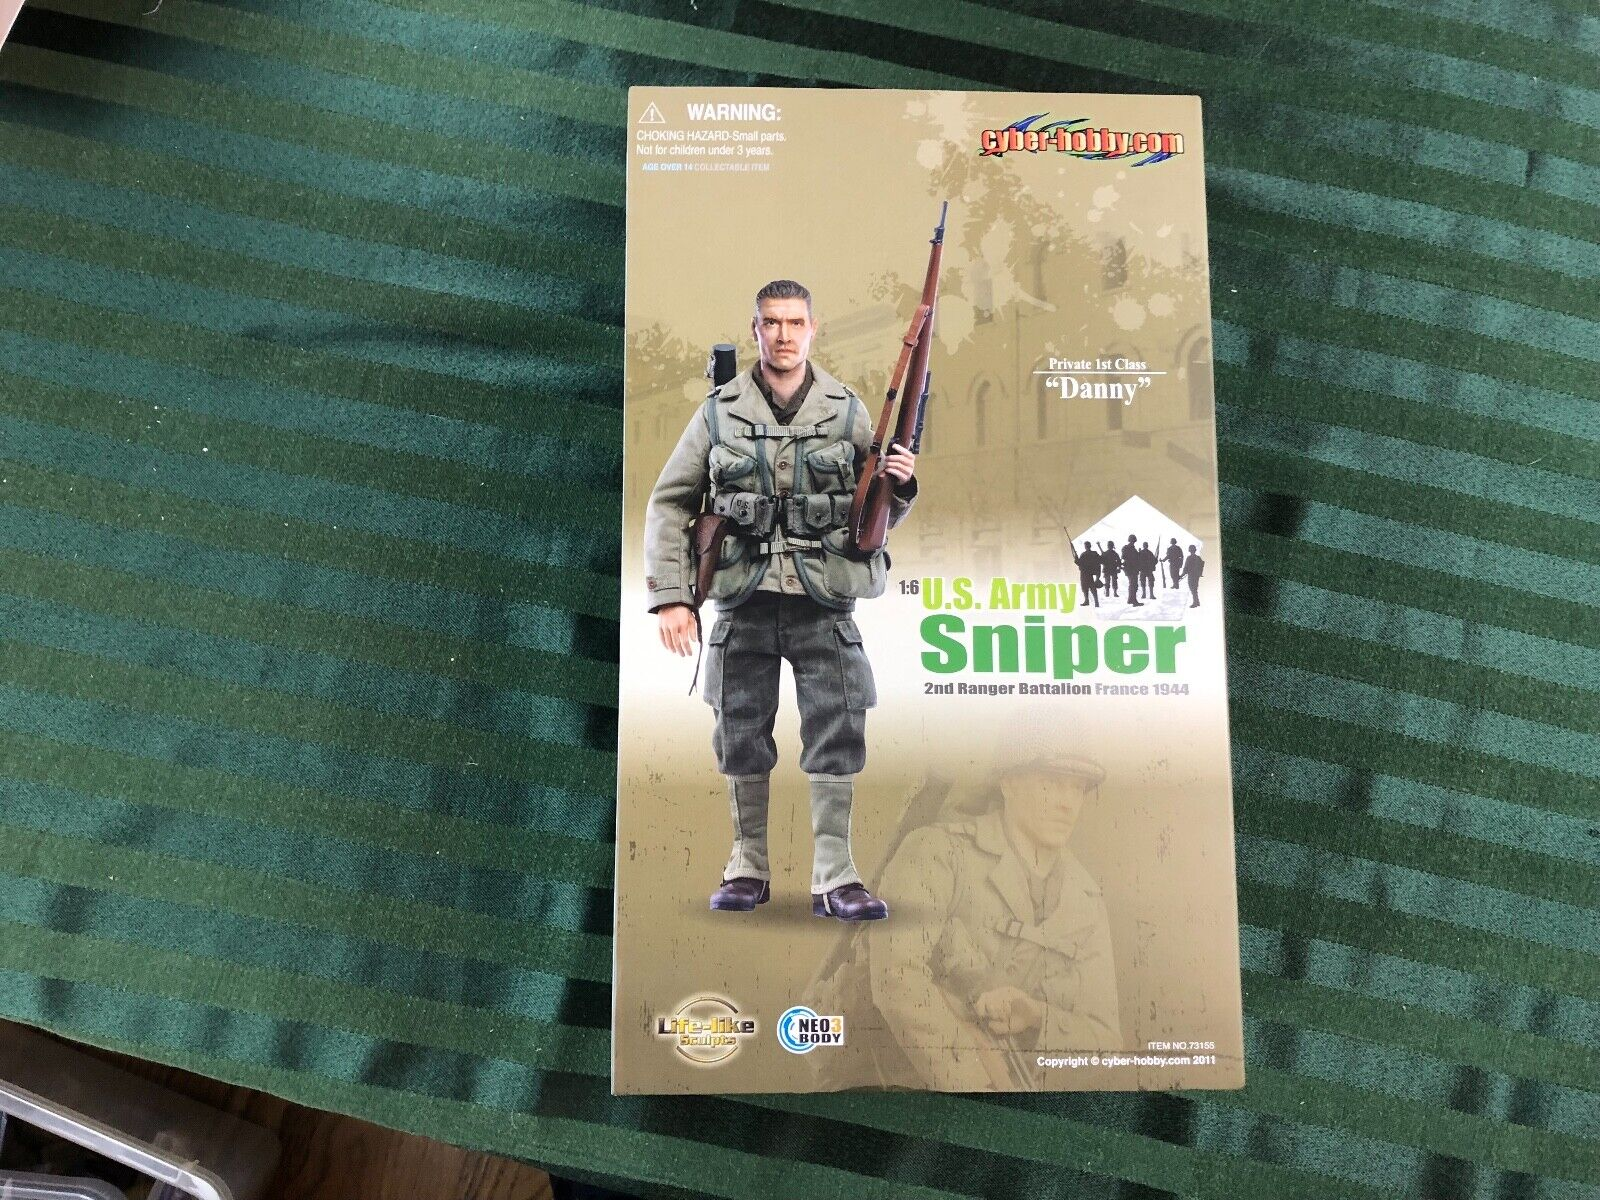 Cyber-Hobby 2nd Ranger Battalion Sniper Private 1st Class  Danny  France 1944